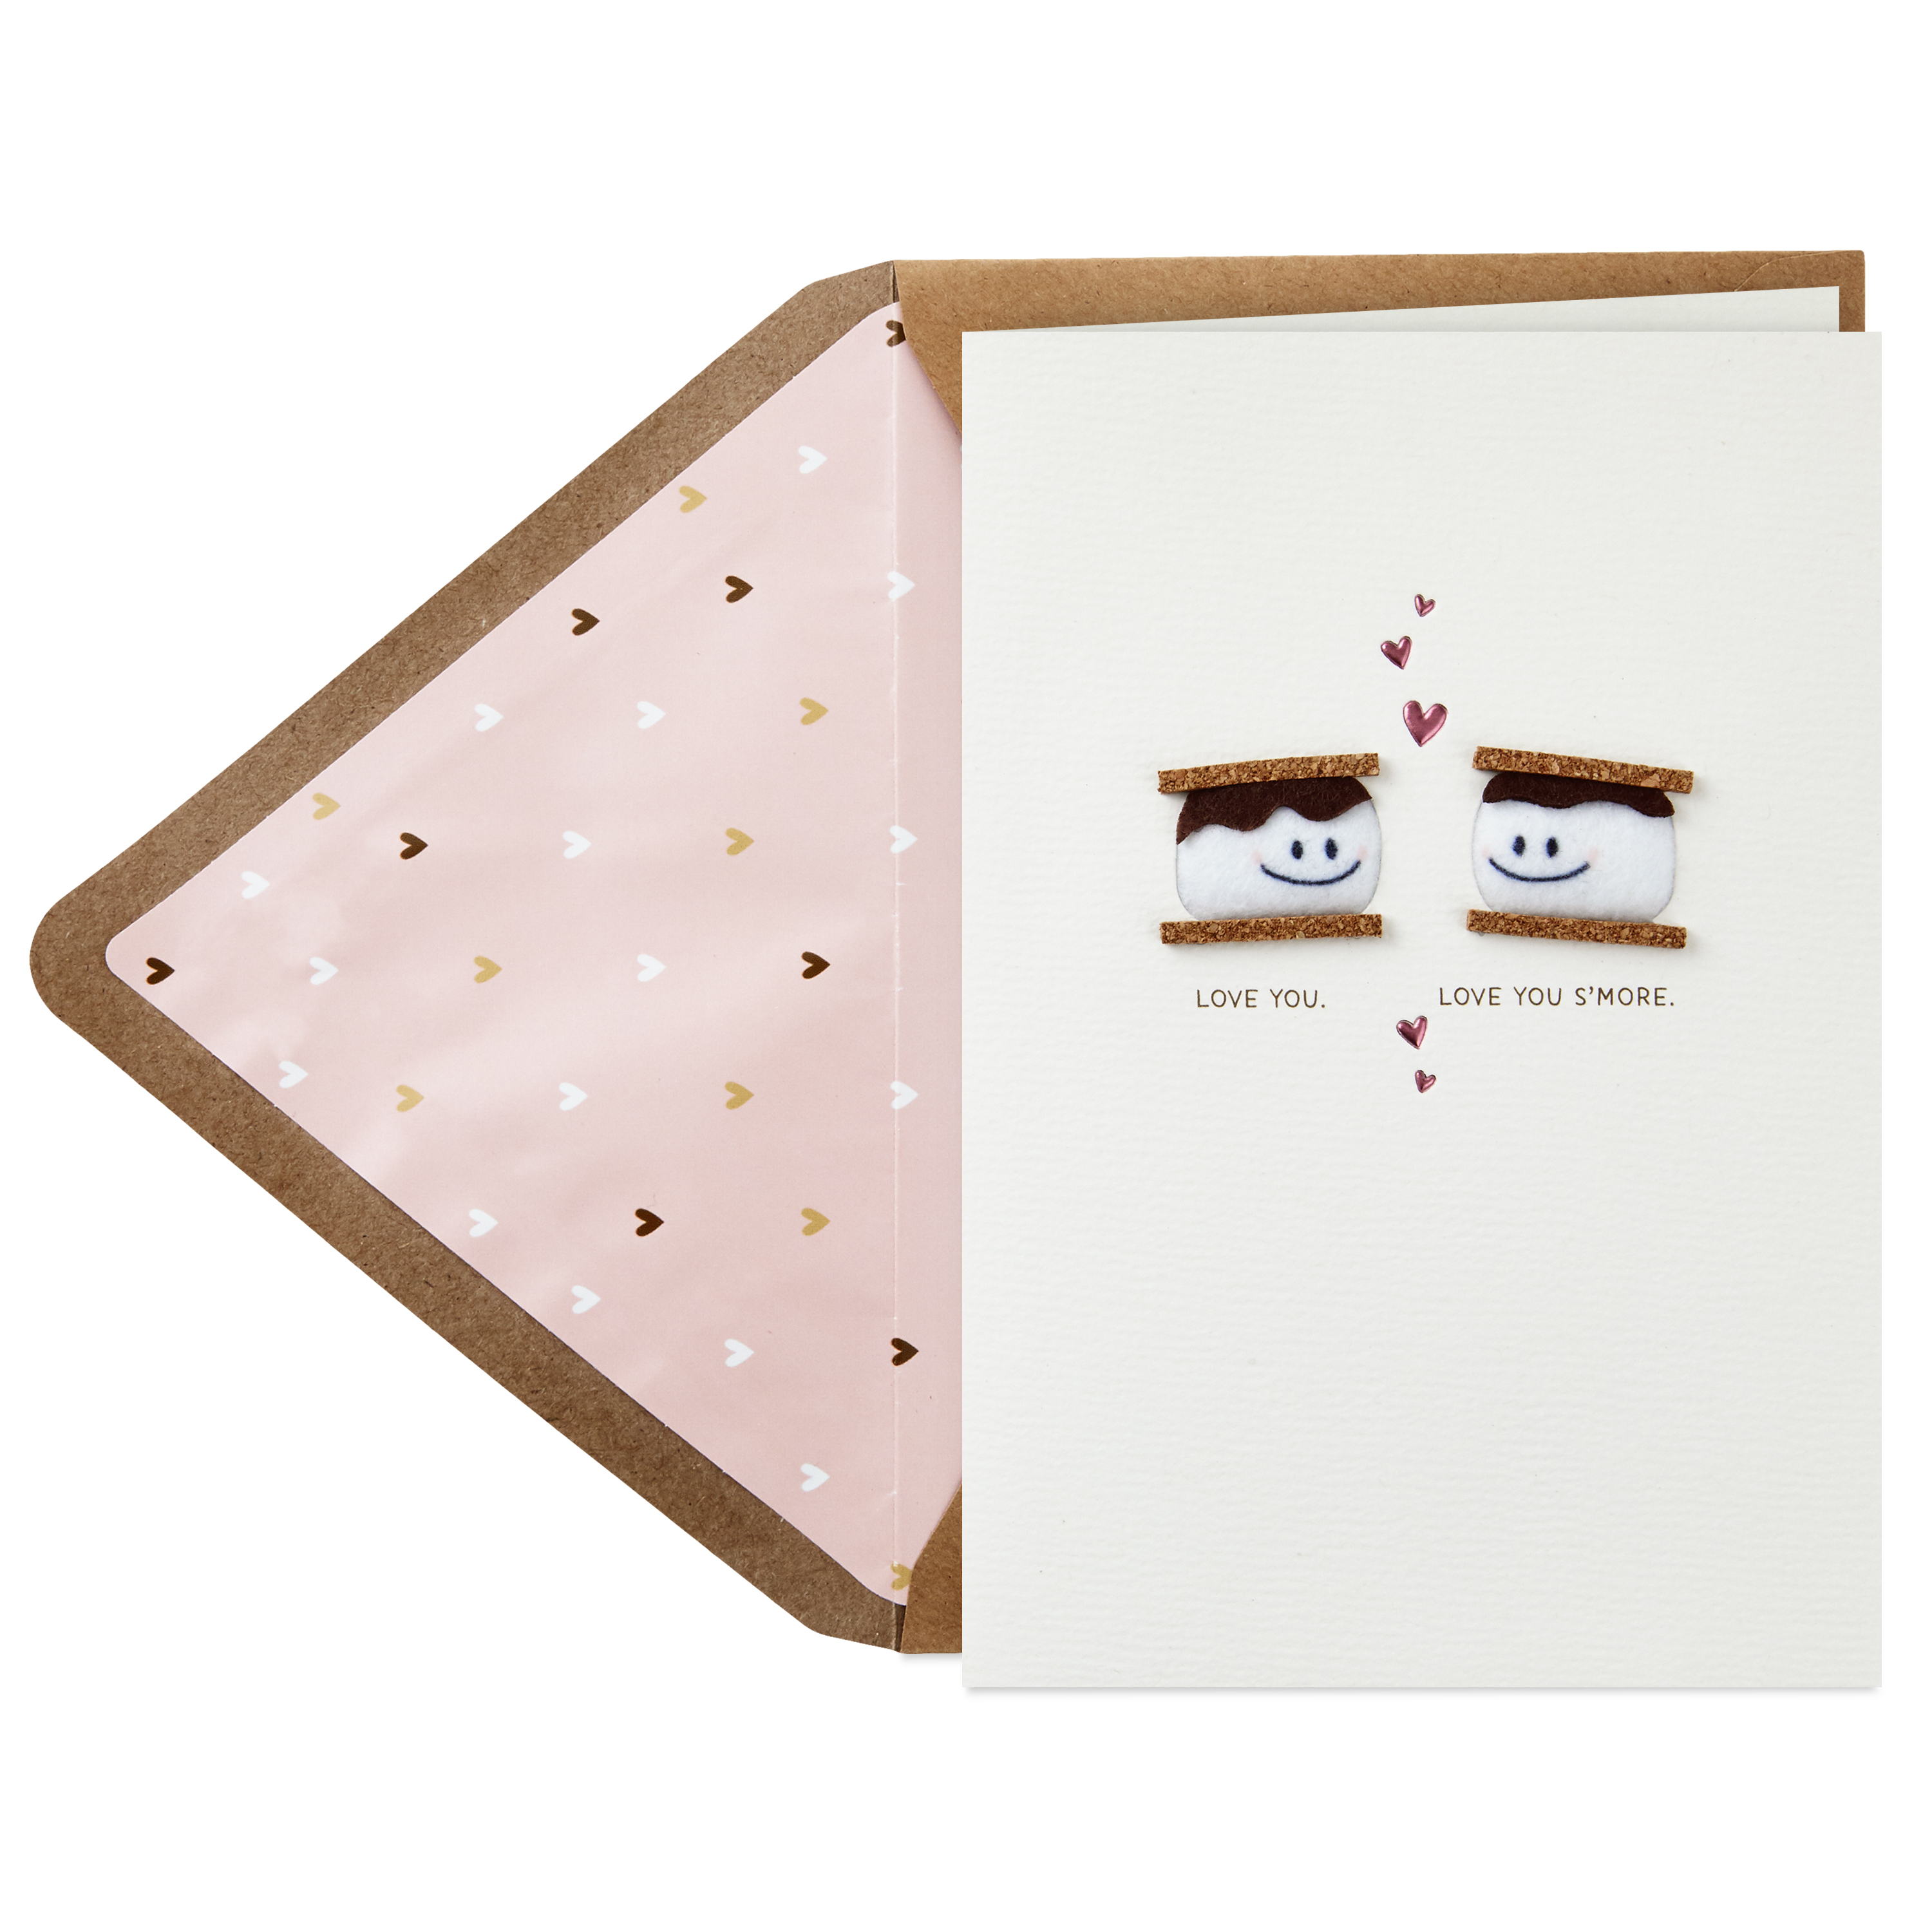 Hallmark Signature Valentine's Day Card for Significant Other (Smores)